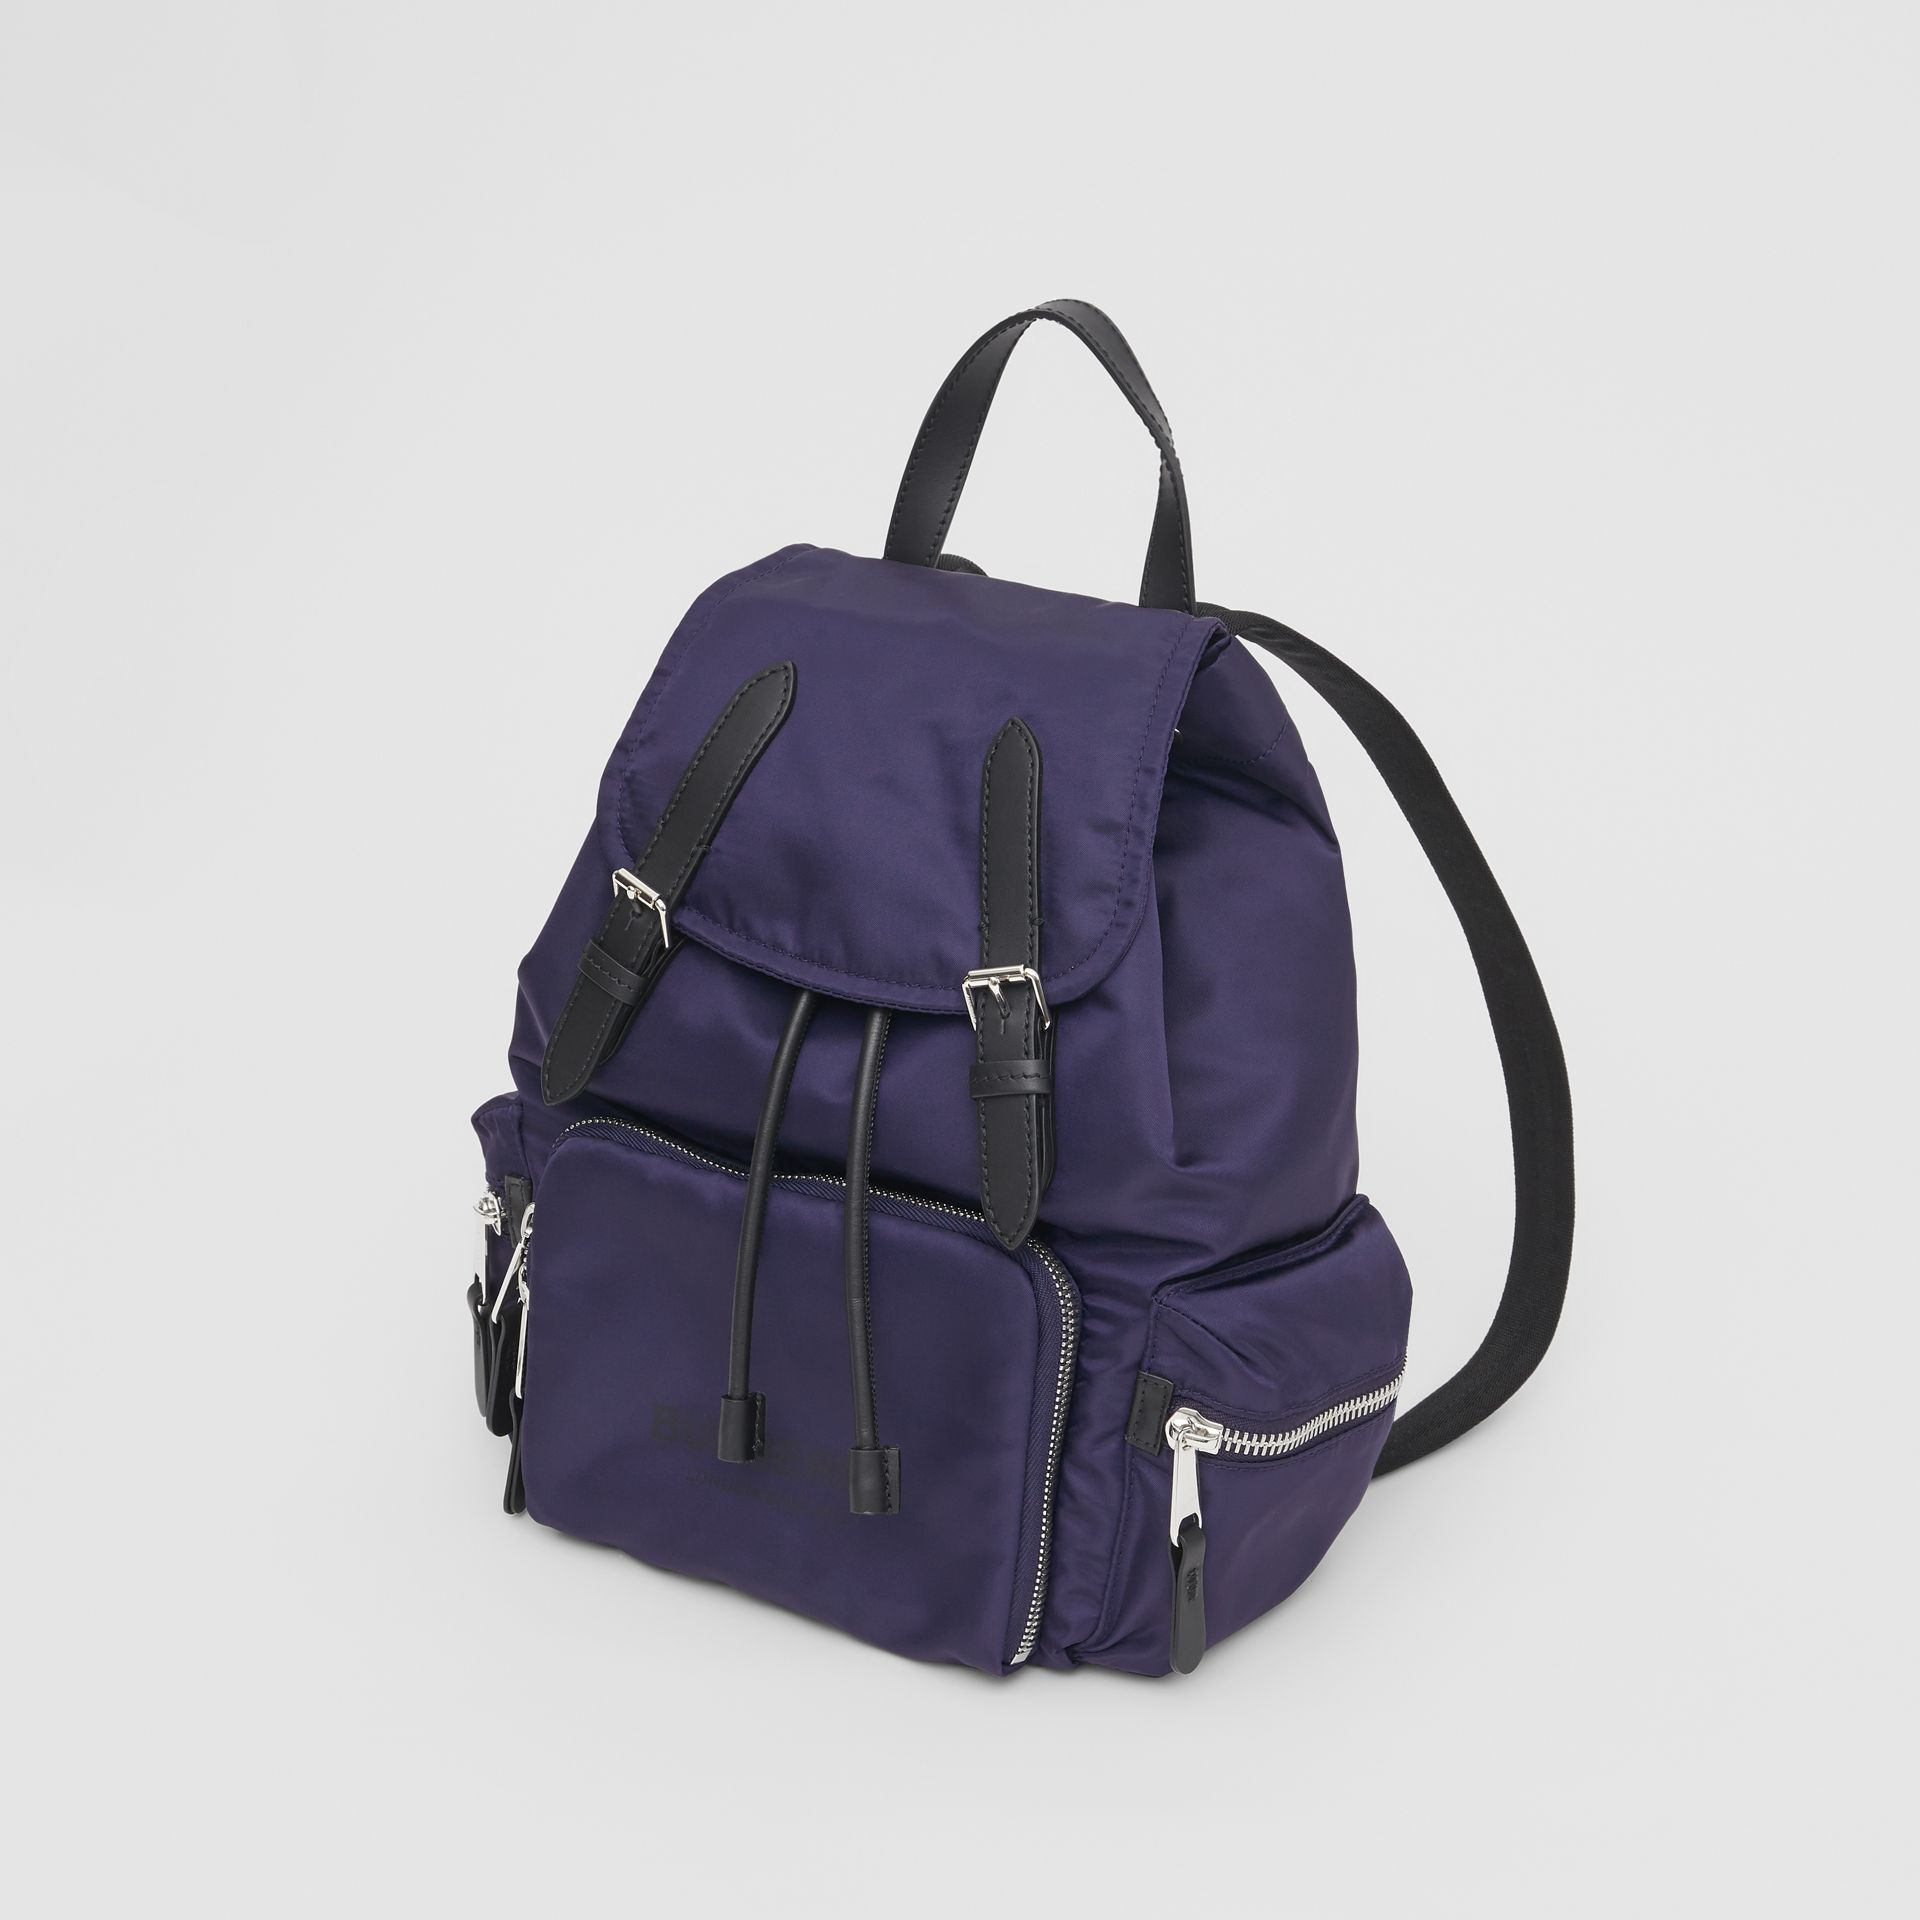 Zaino The Rucksack medio in nylon con logo (Blu Navy) - Donna | Burberry - immagine della galleria 2